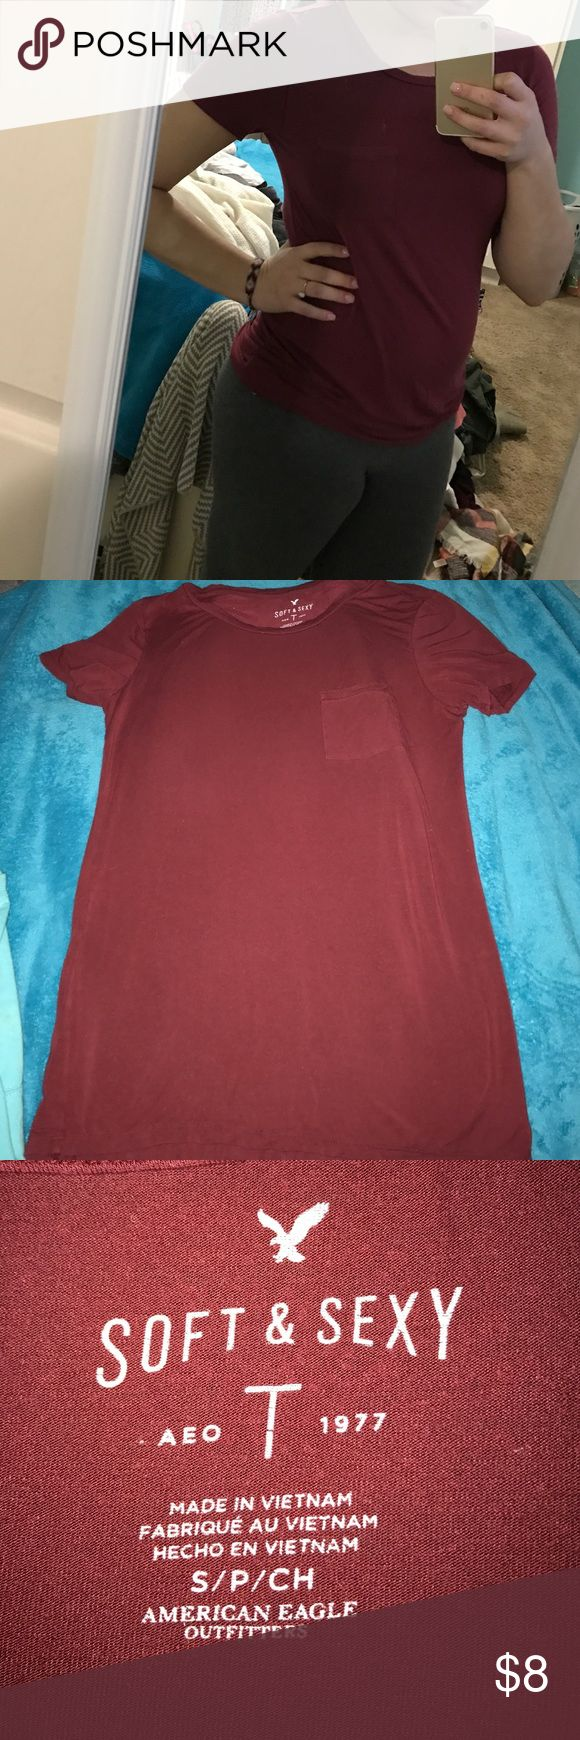 American Eagle Soft & Sexy Tee! Burgundy TShirt! Super comfy and cute! Great condition! Part of the soft and sexy line by American Eagle. American Eagle Outfitters Tops Tees - Short Sleeve